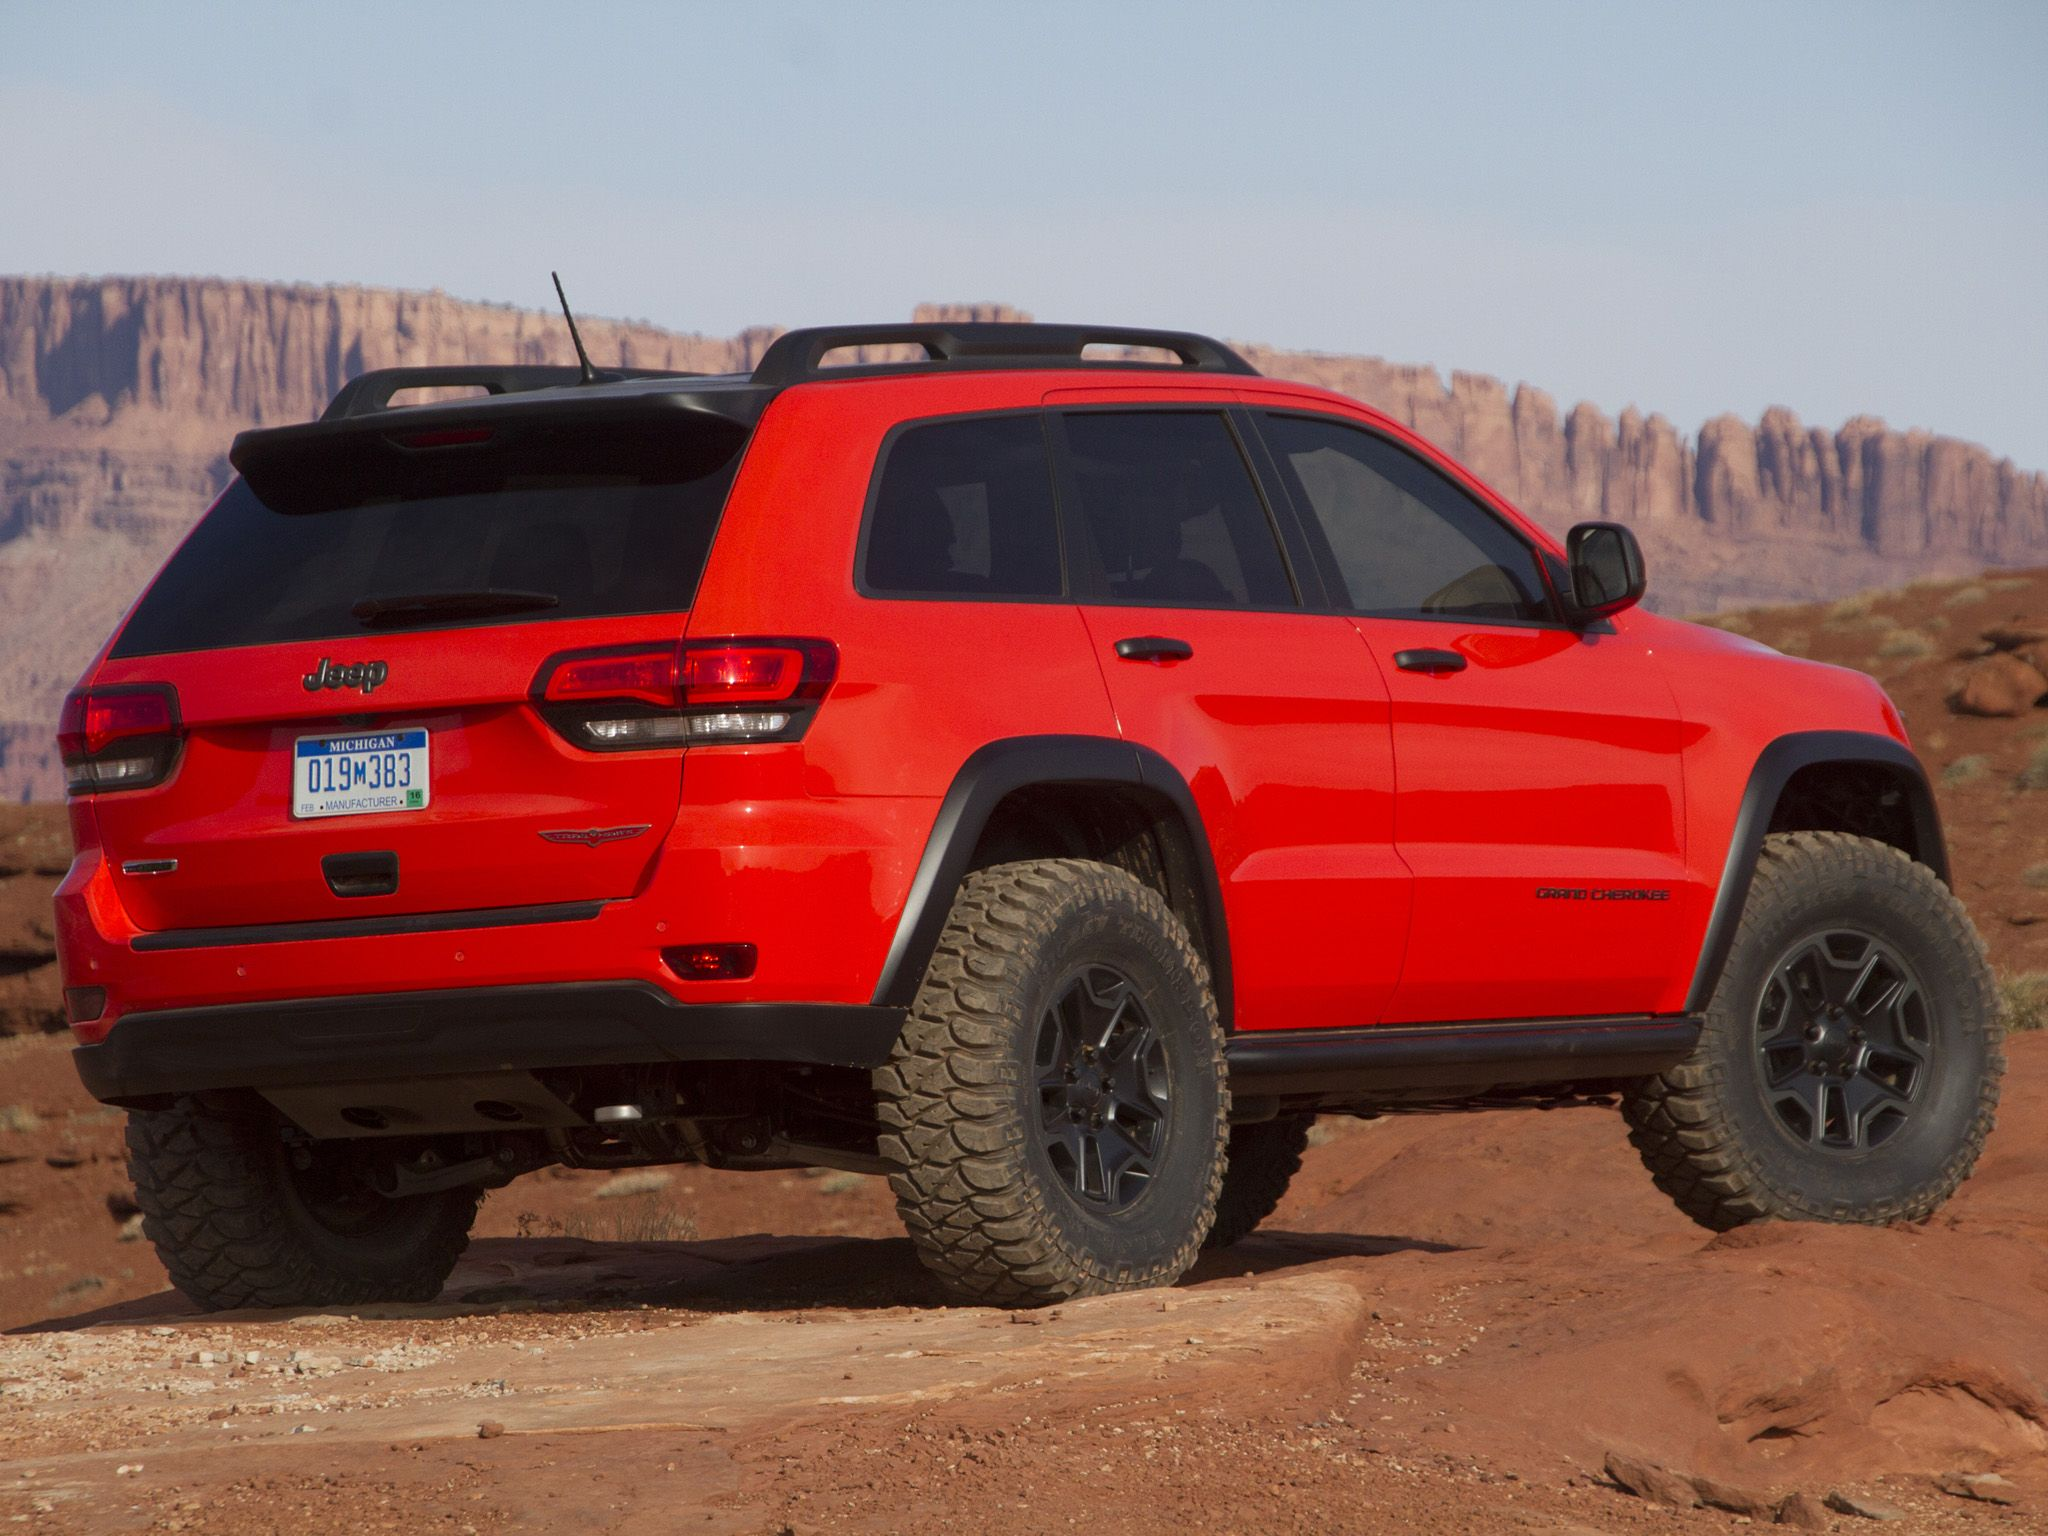 jeep grand cherokee 2004 trail hawk test vehicle jeep. Black Bedroom Furniture Sets. Home Design Ideas